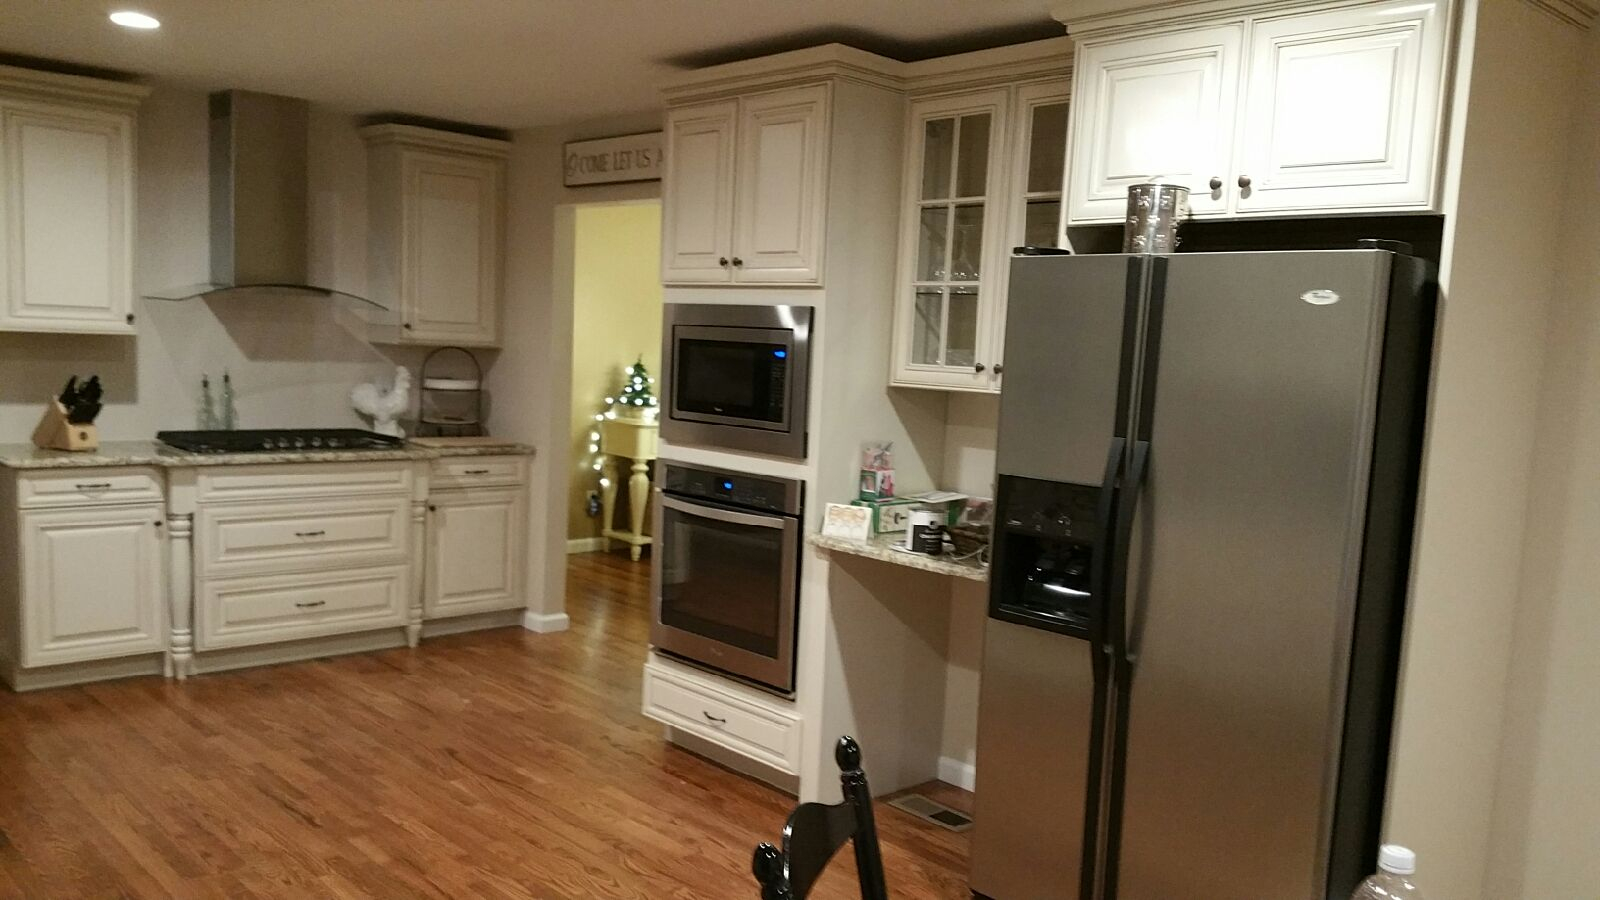 New Jersey Kitchen Cabinets Csd Kitchen And Bath Llc Kitchen Cabinet New Jersey Kitchen